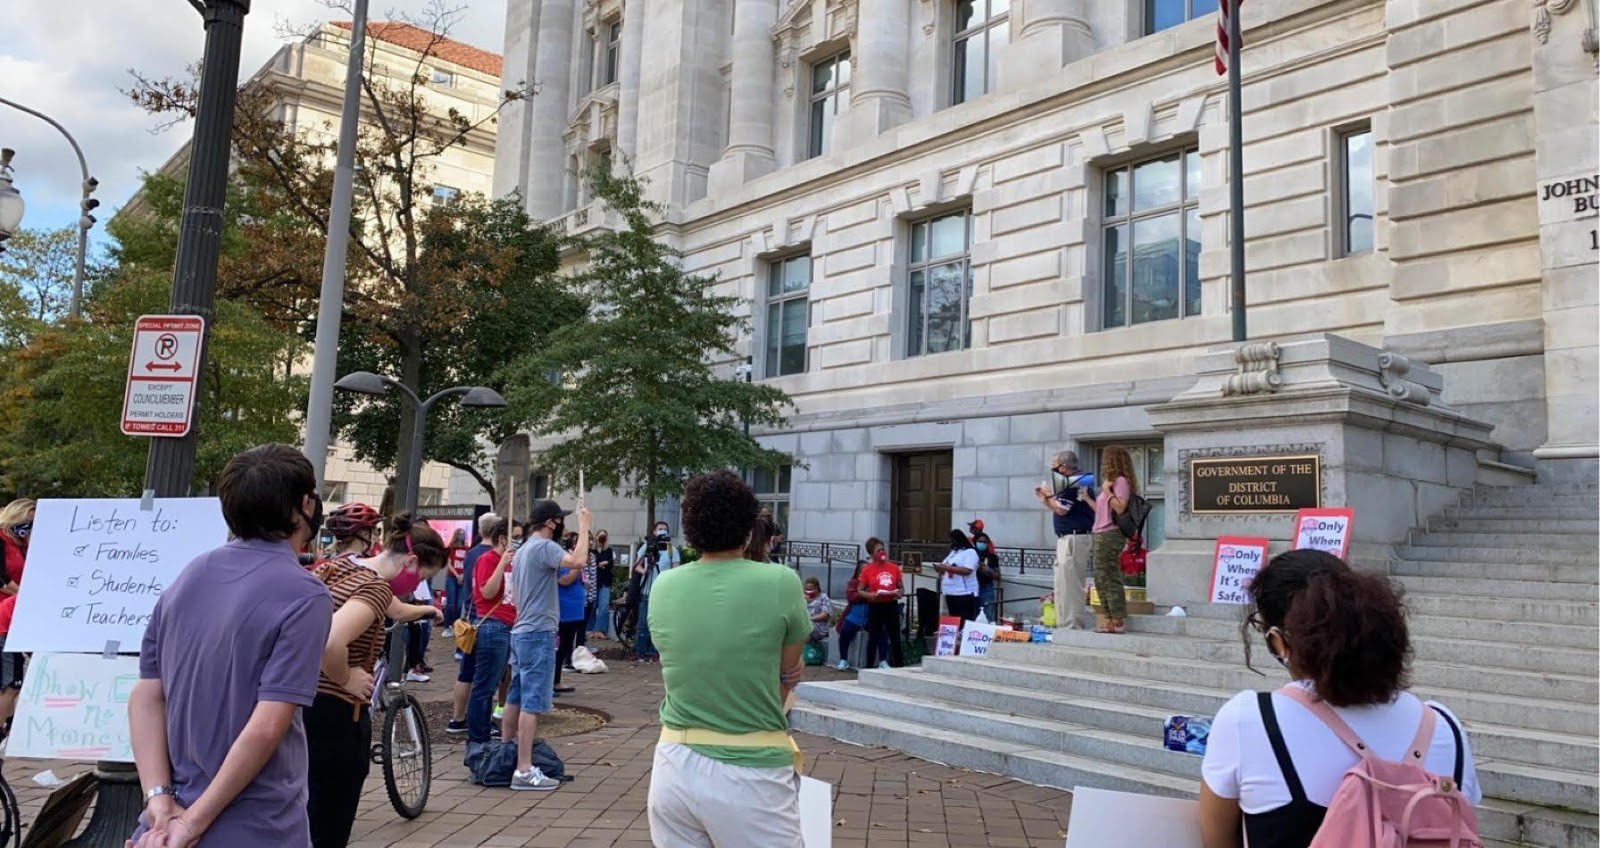 WTU rally with teacher and parent testimony outside Wilson Building. Photo by Dylan Craig